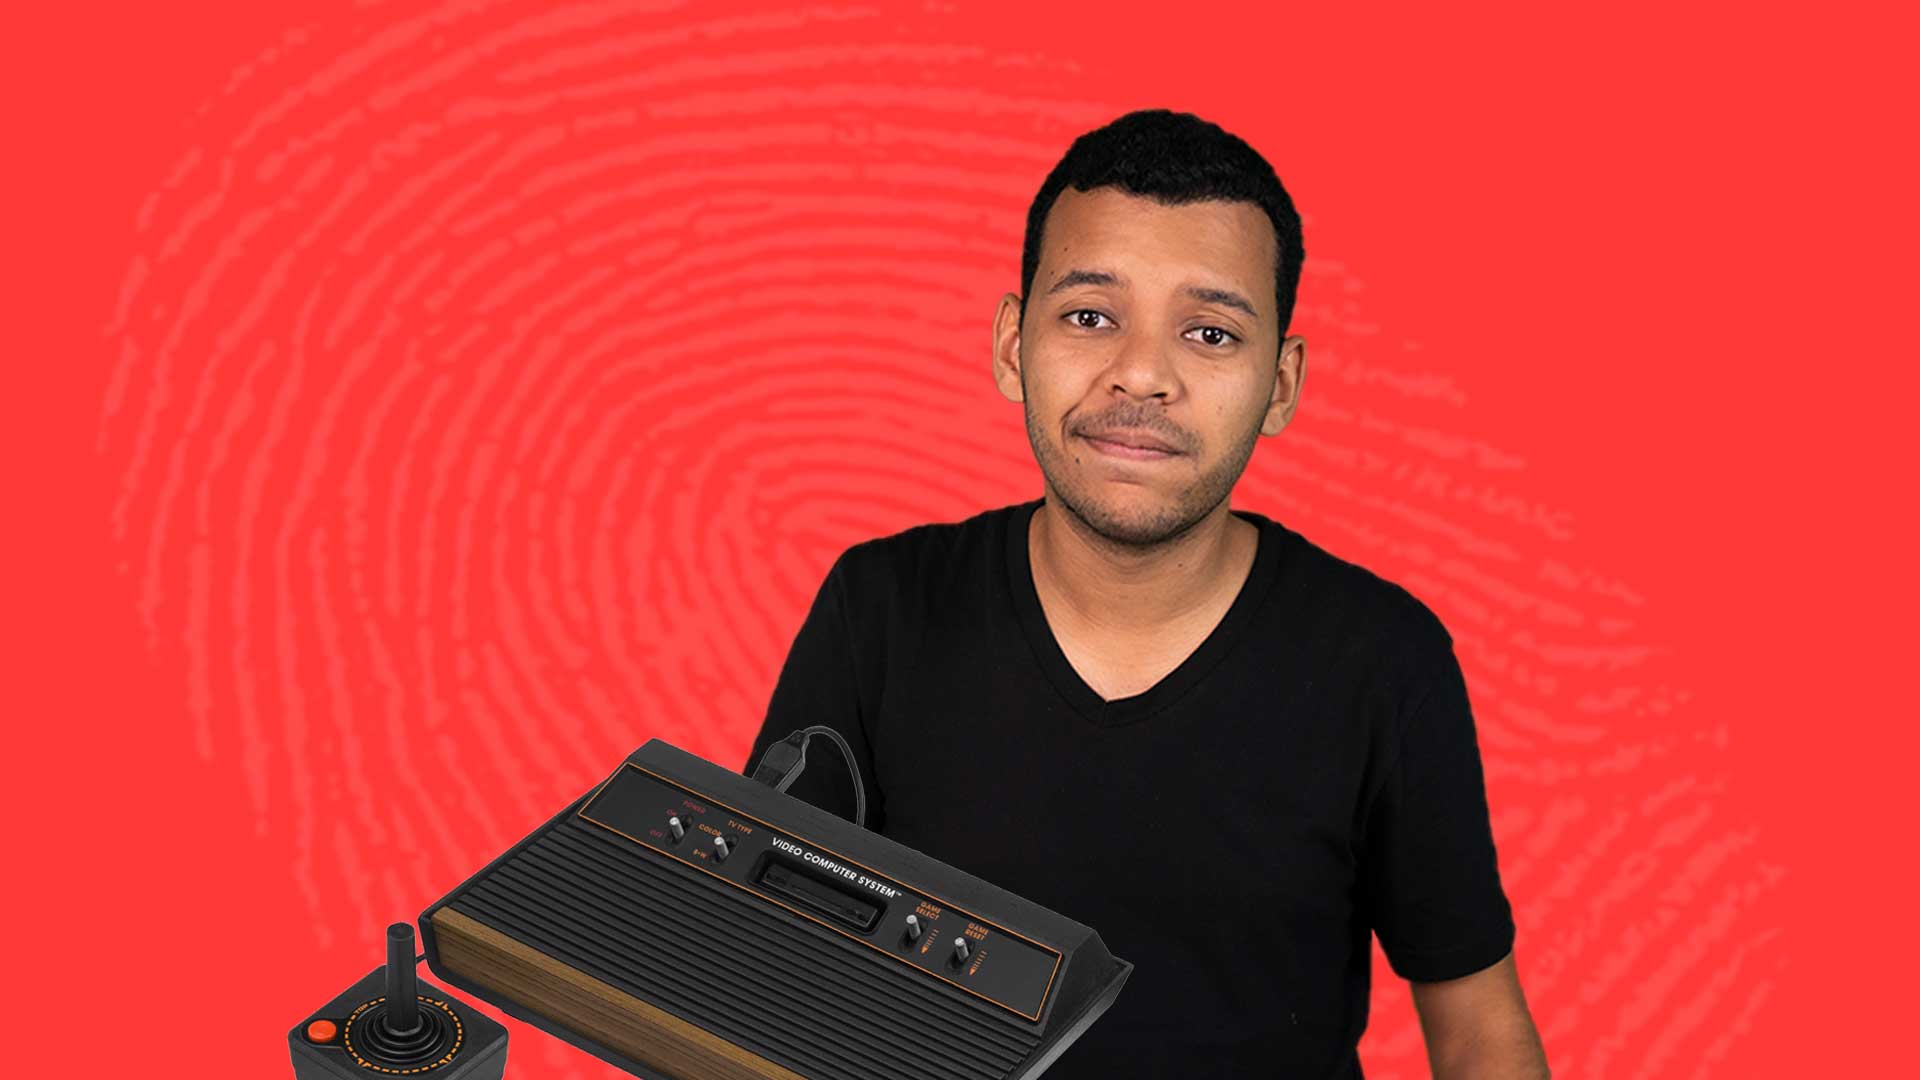 Atari Console Story: The Rise and Fall - Image contains show host over a red background